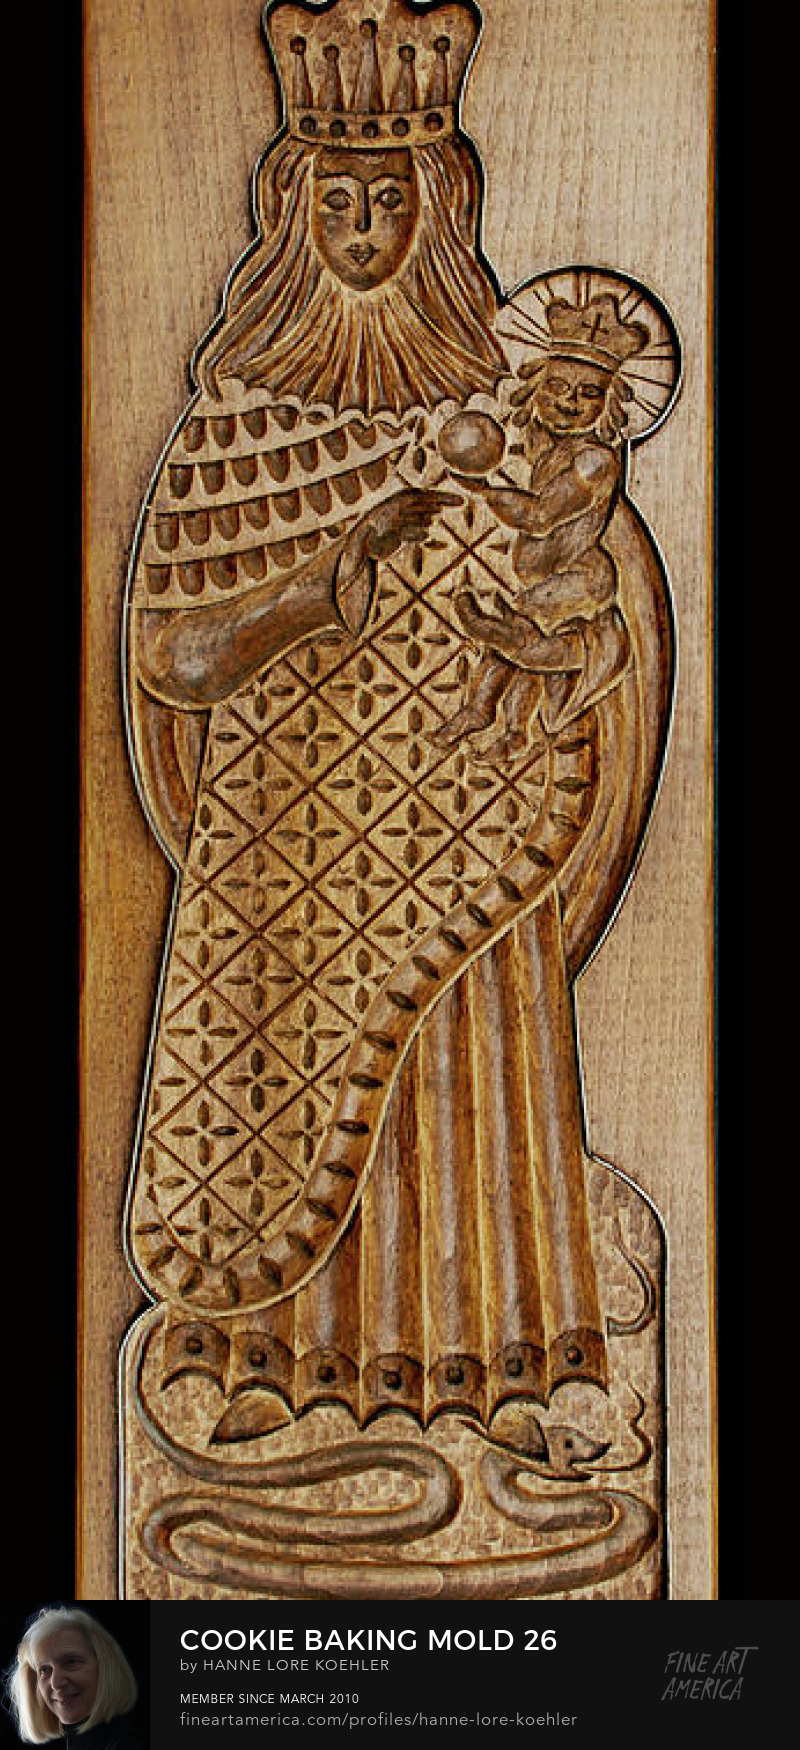 Art Prints of hand-carved wood Gingerbread Cookie molds